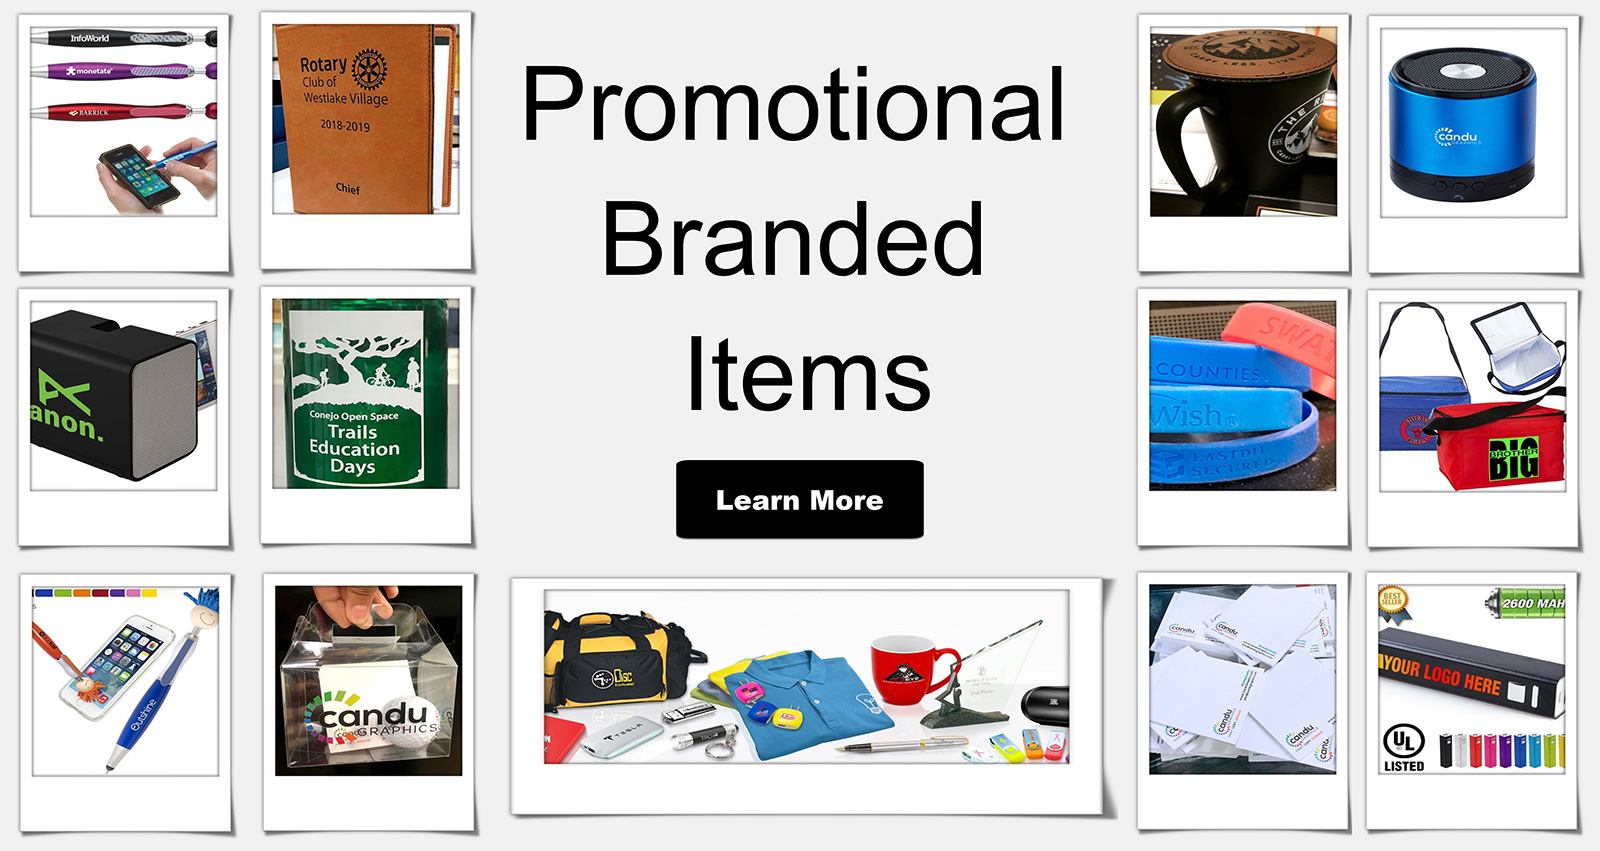 Promotional Branded Items